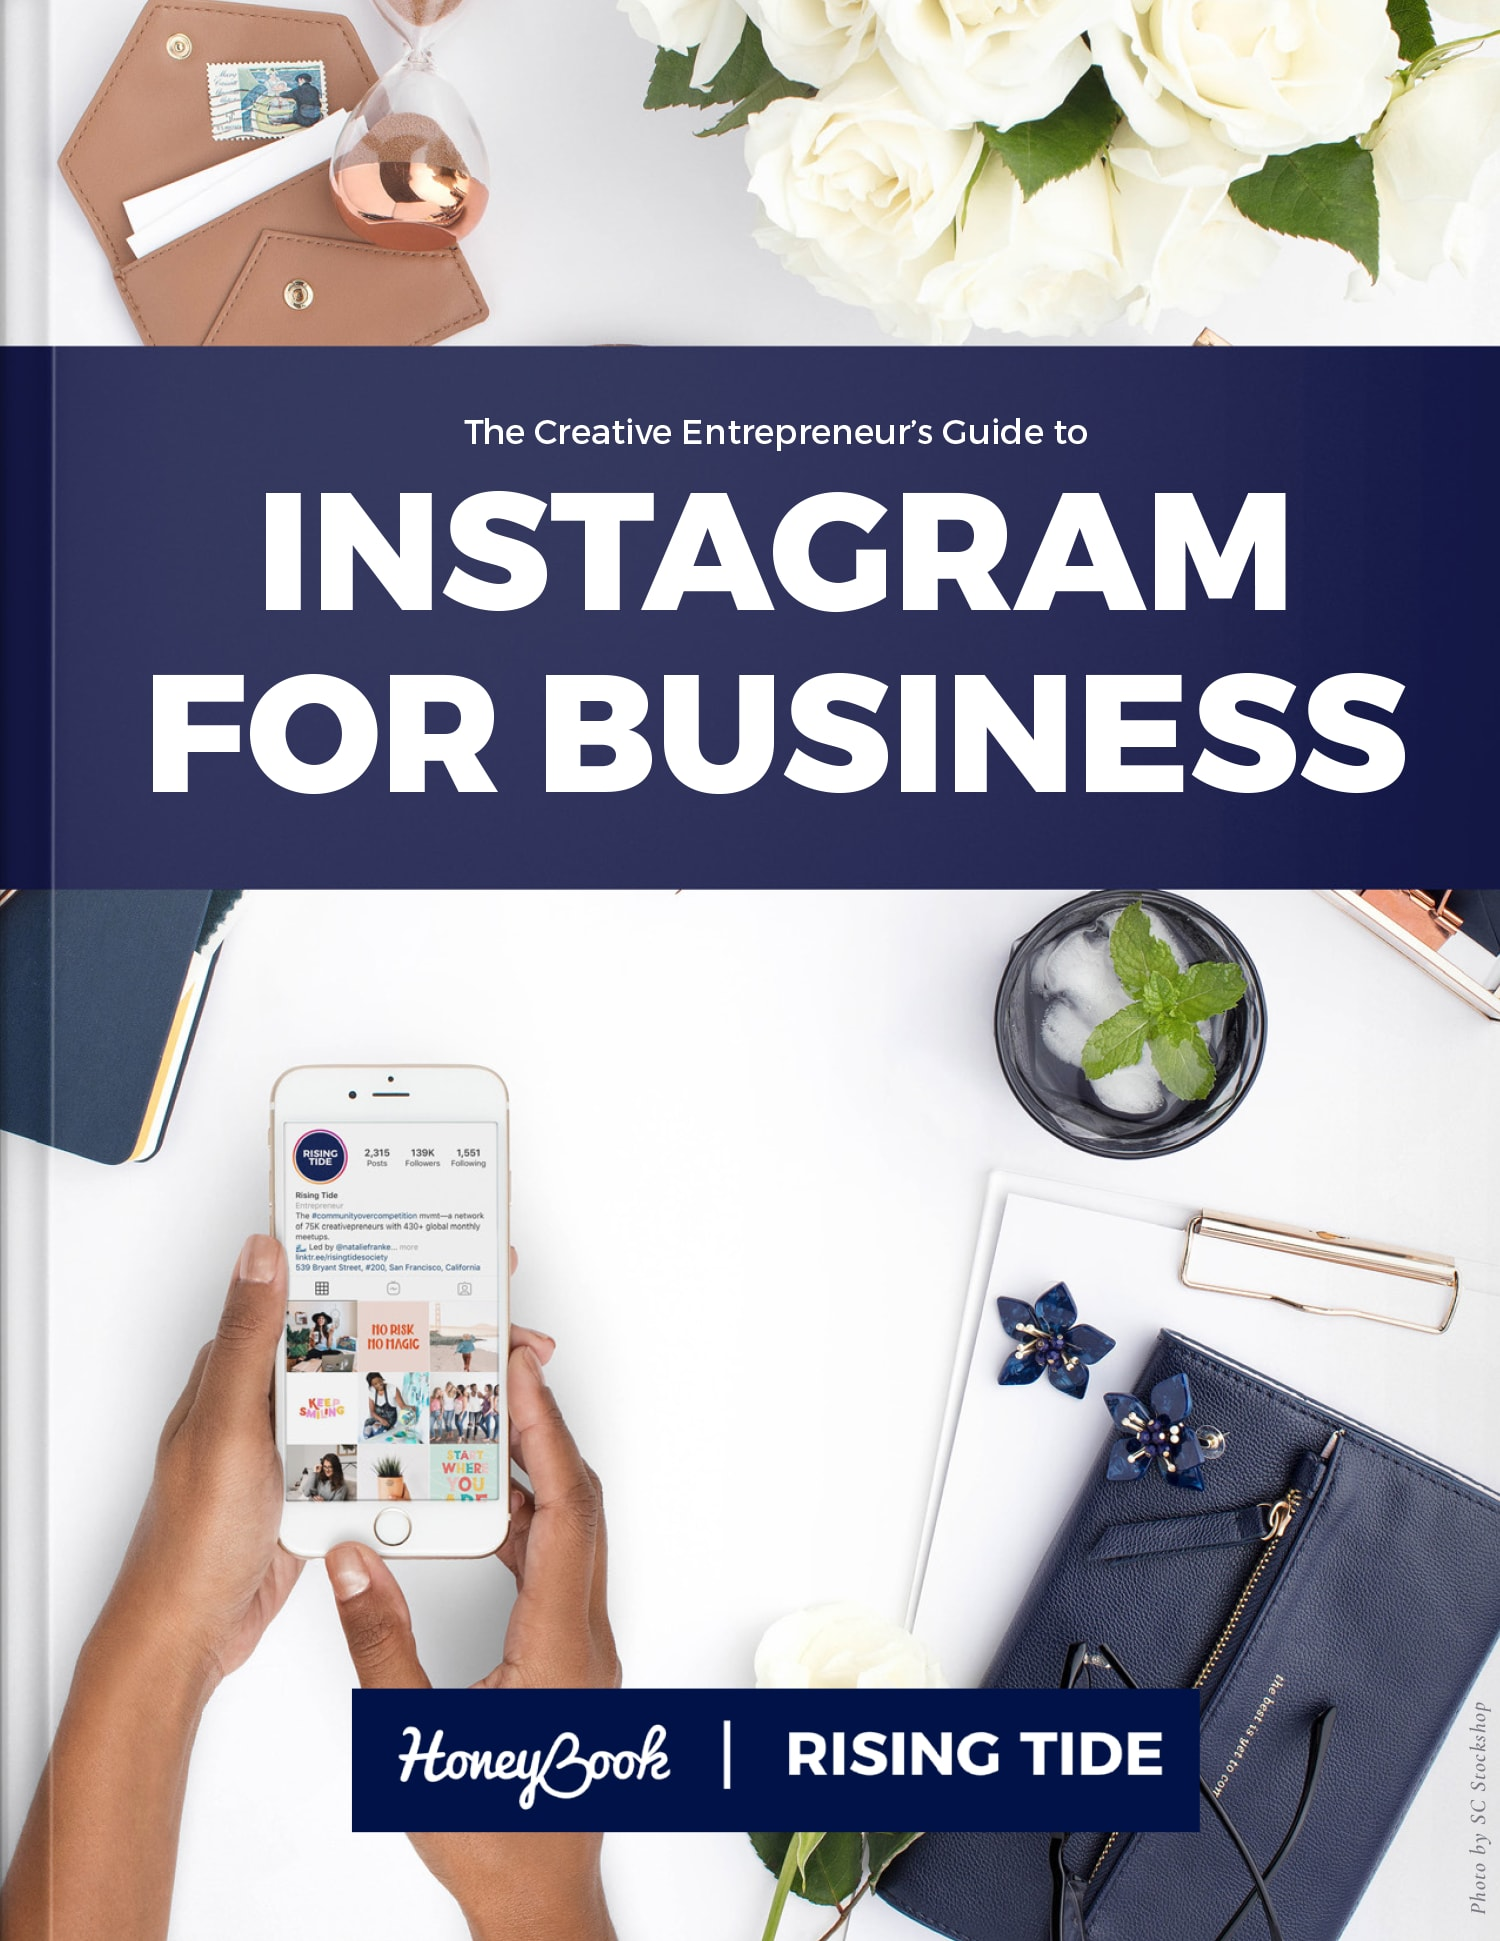 Instagram for Business – The Ultimate Guide